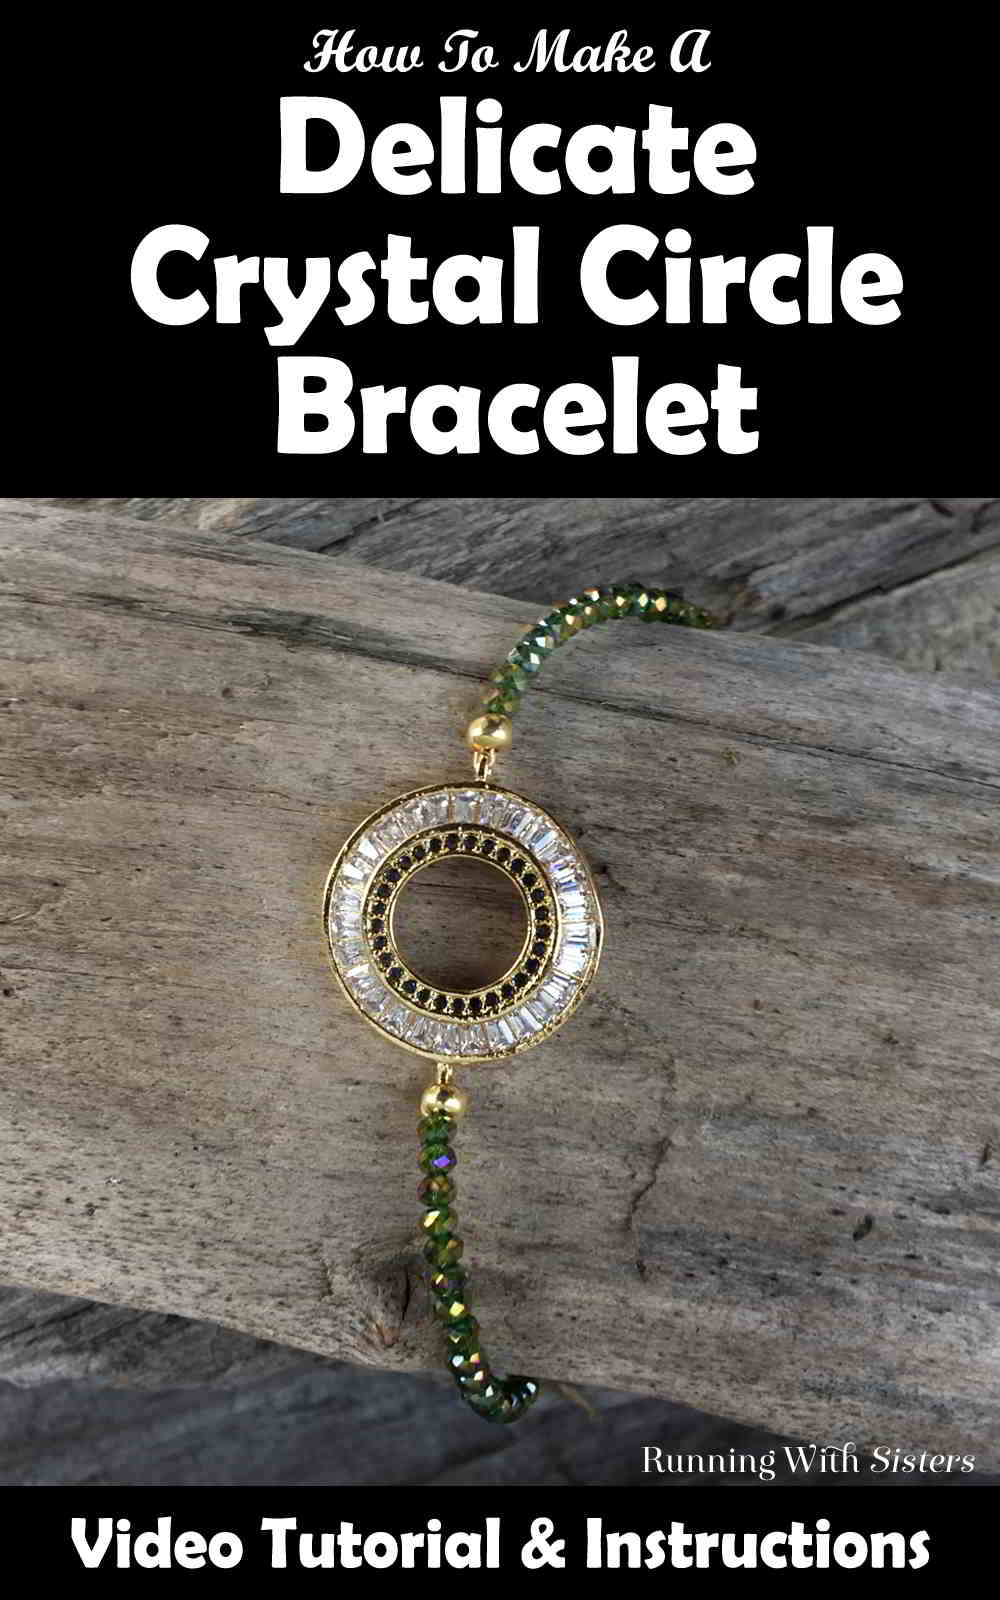 Make a Delicate Crystal Circle Bracelet with gorgeous crystal beads. We'll show you how to string the beads and add the clasp with this video tutorial.